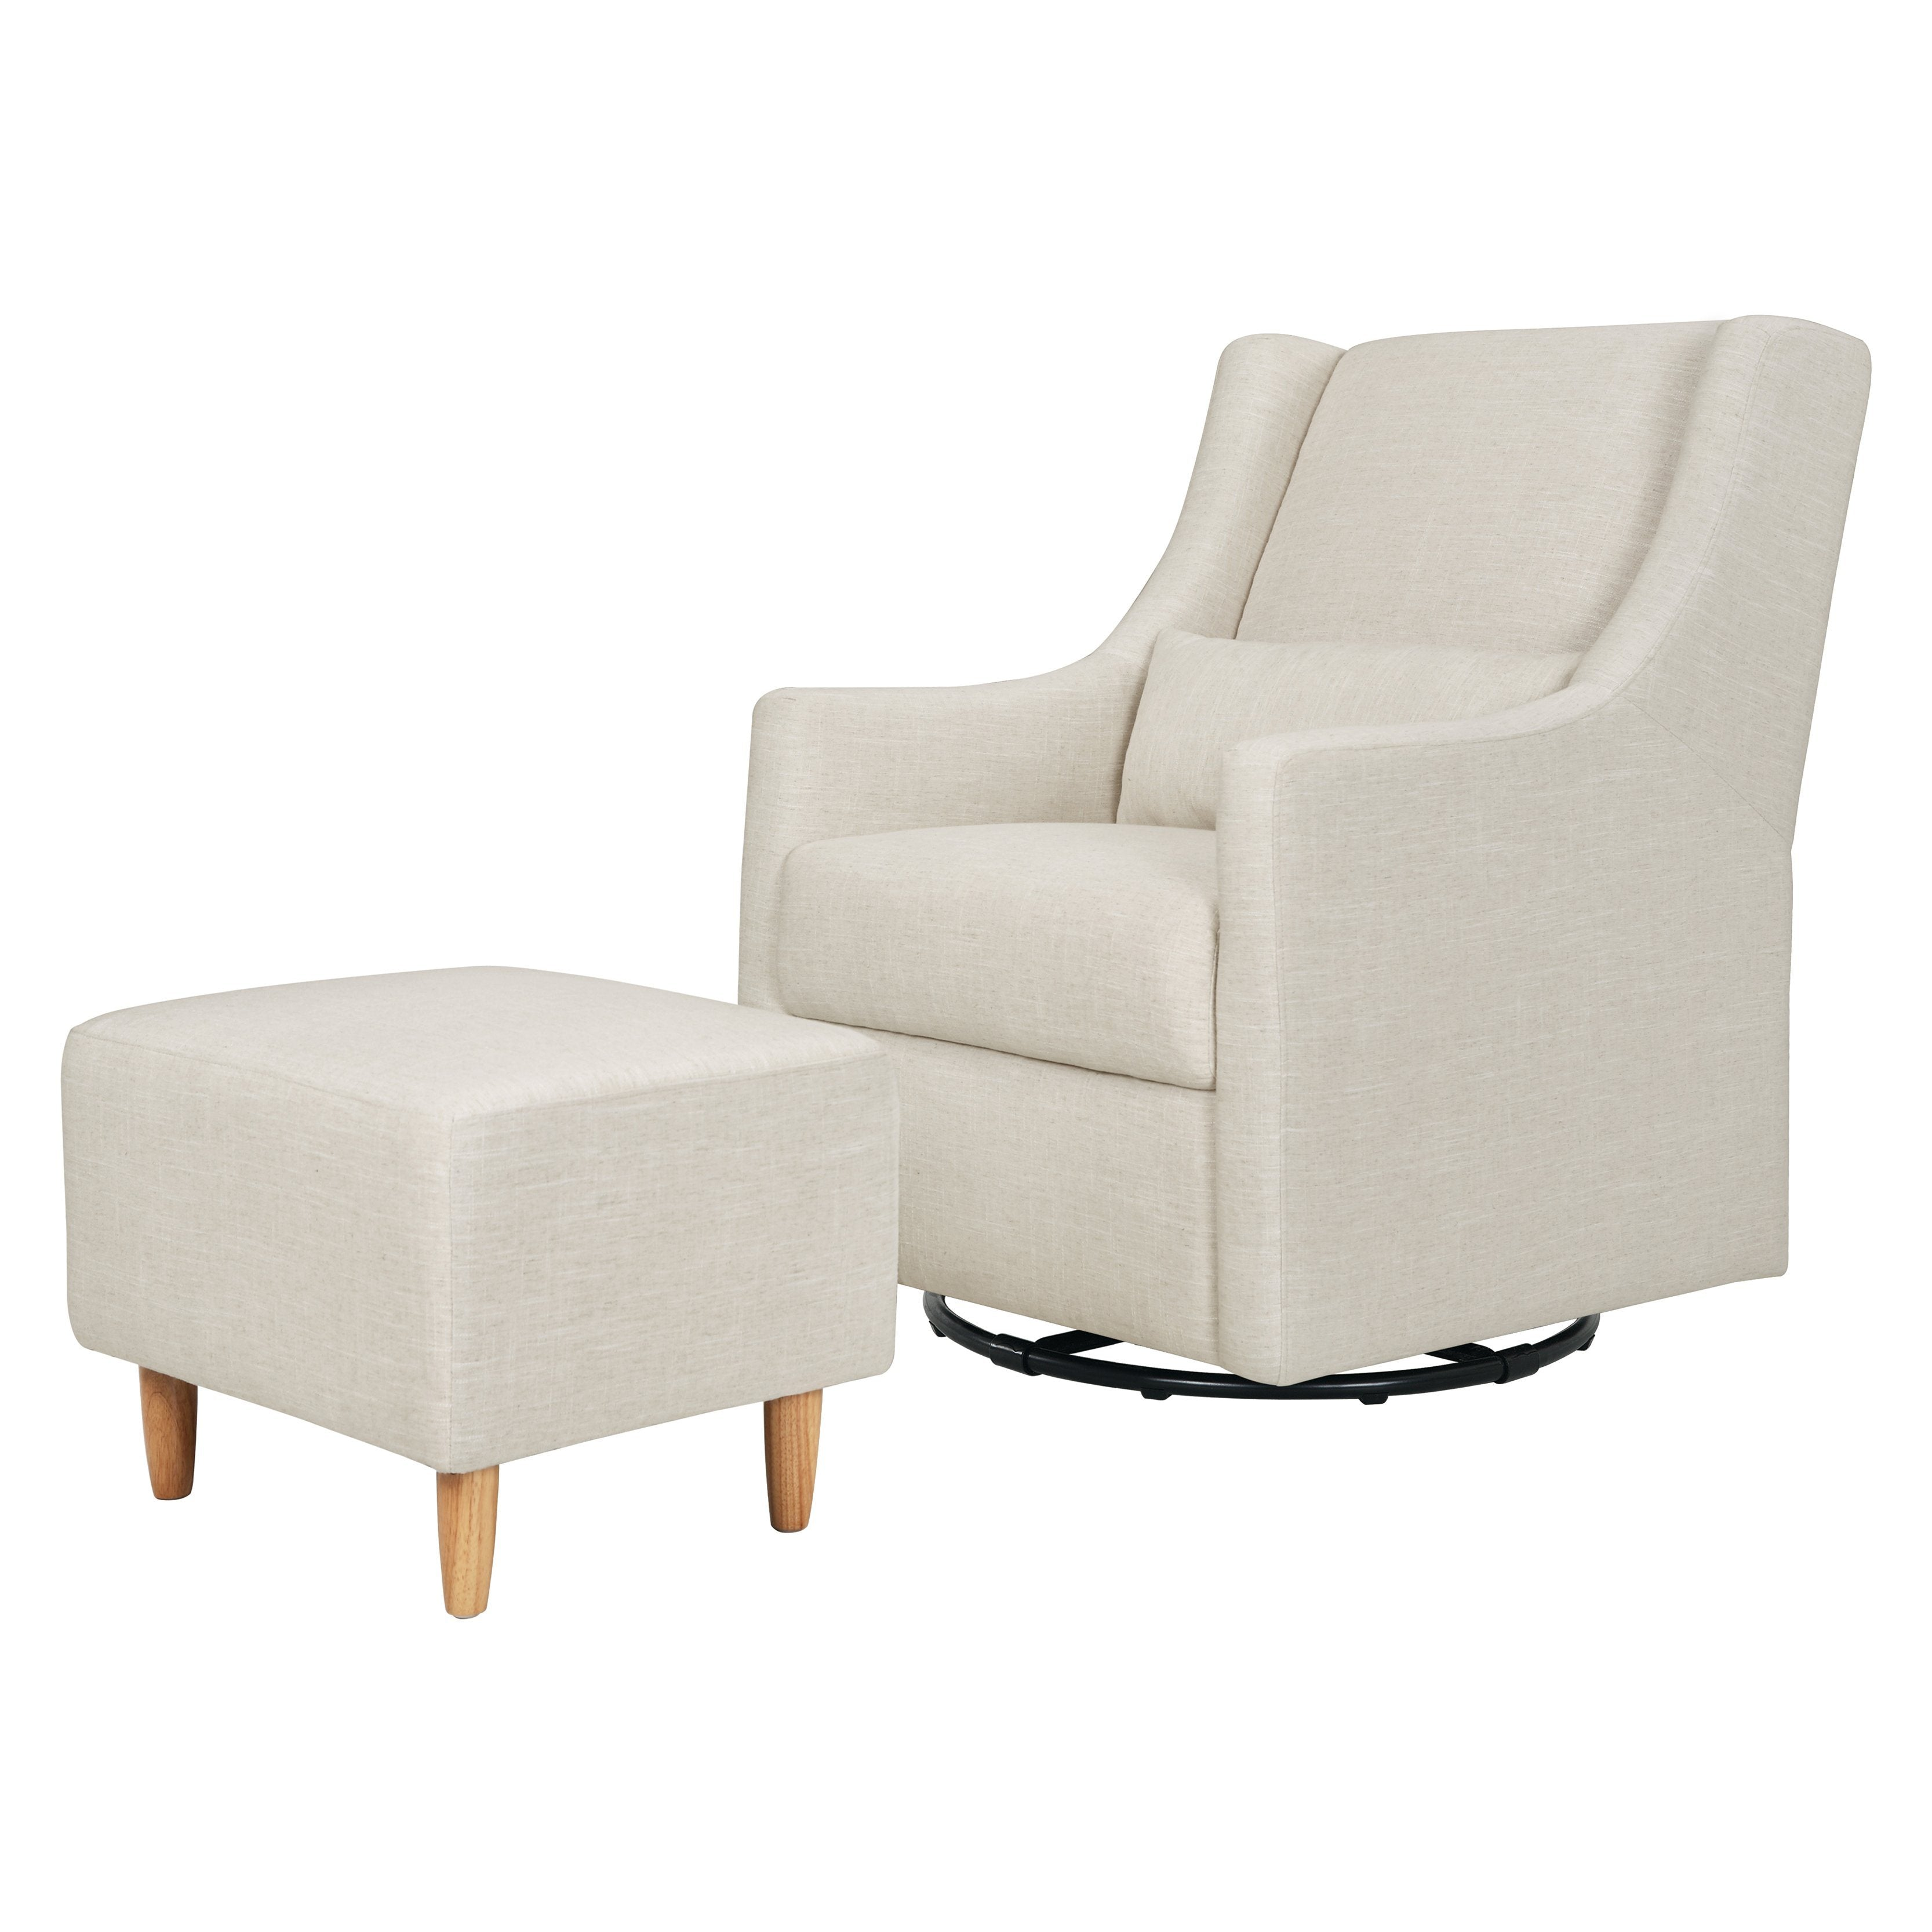 Toco Swivel Glider + Stationary Ottoman - Project Nursery